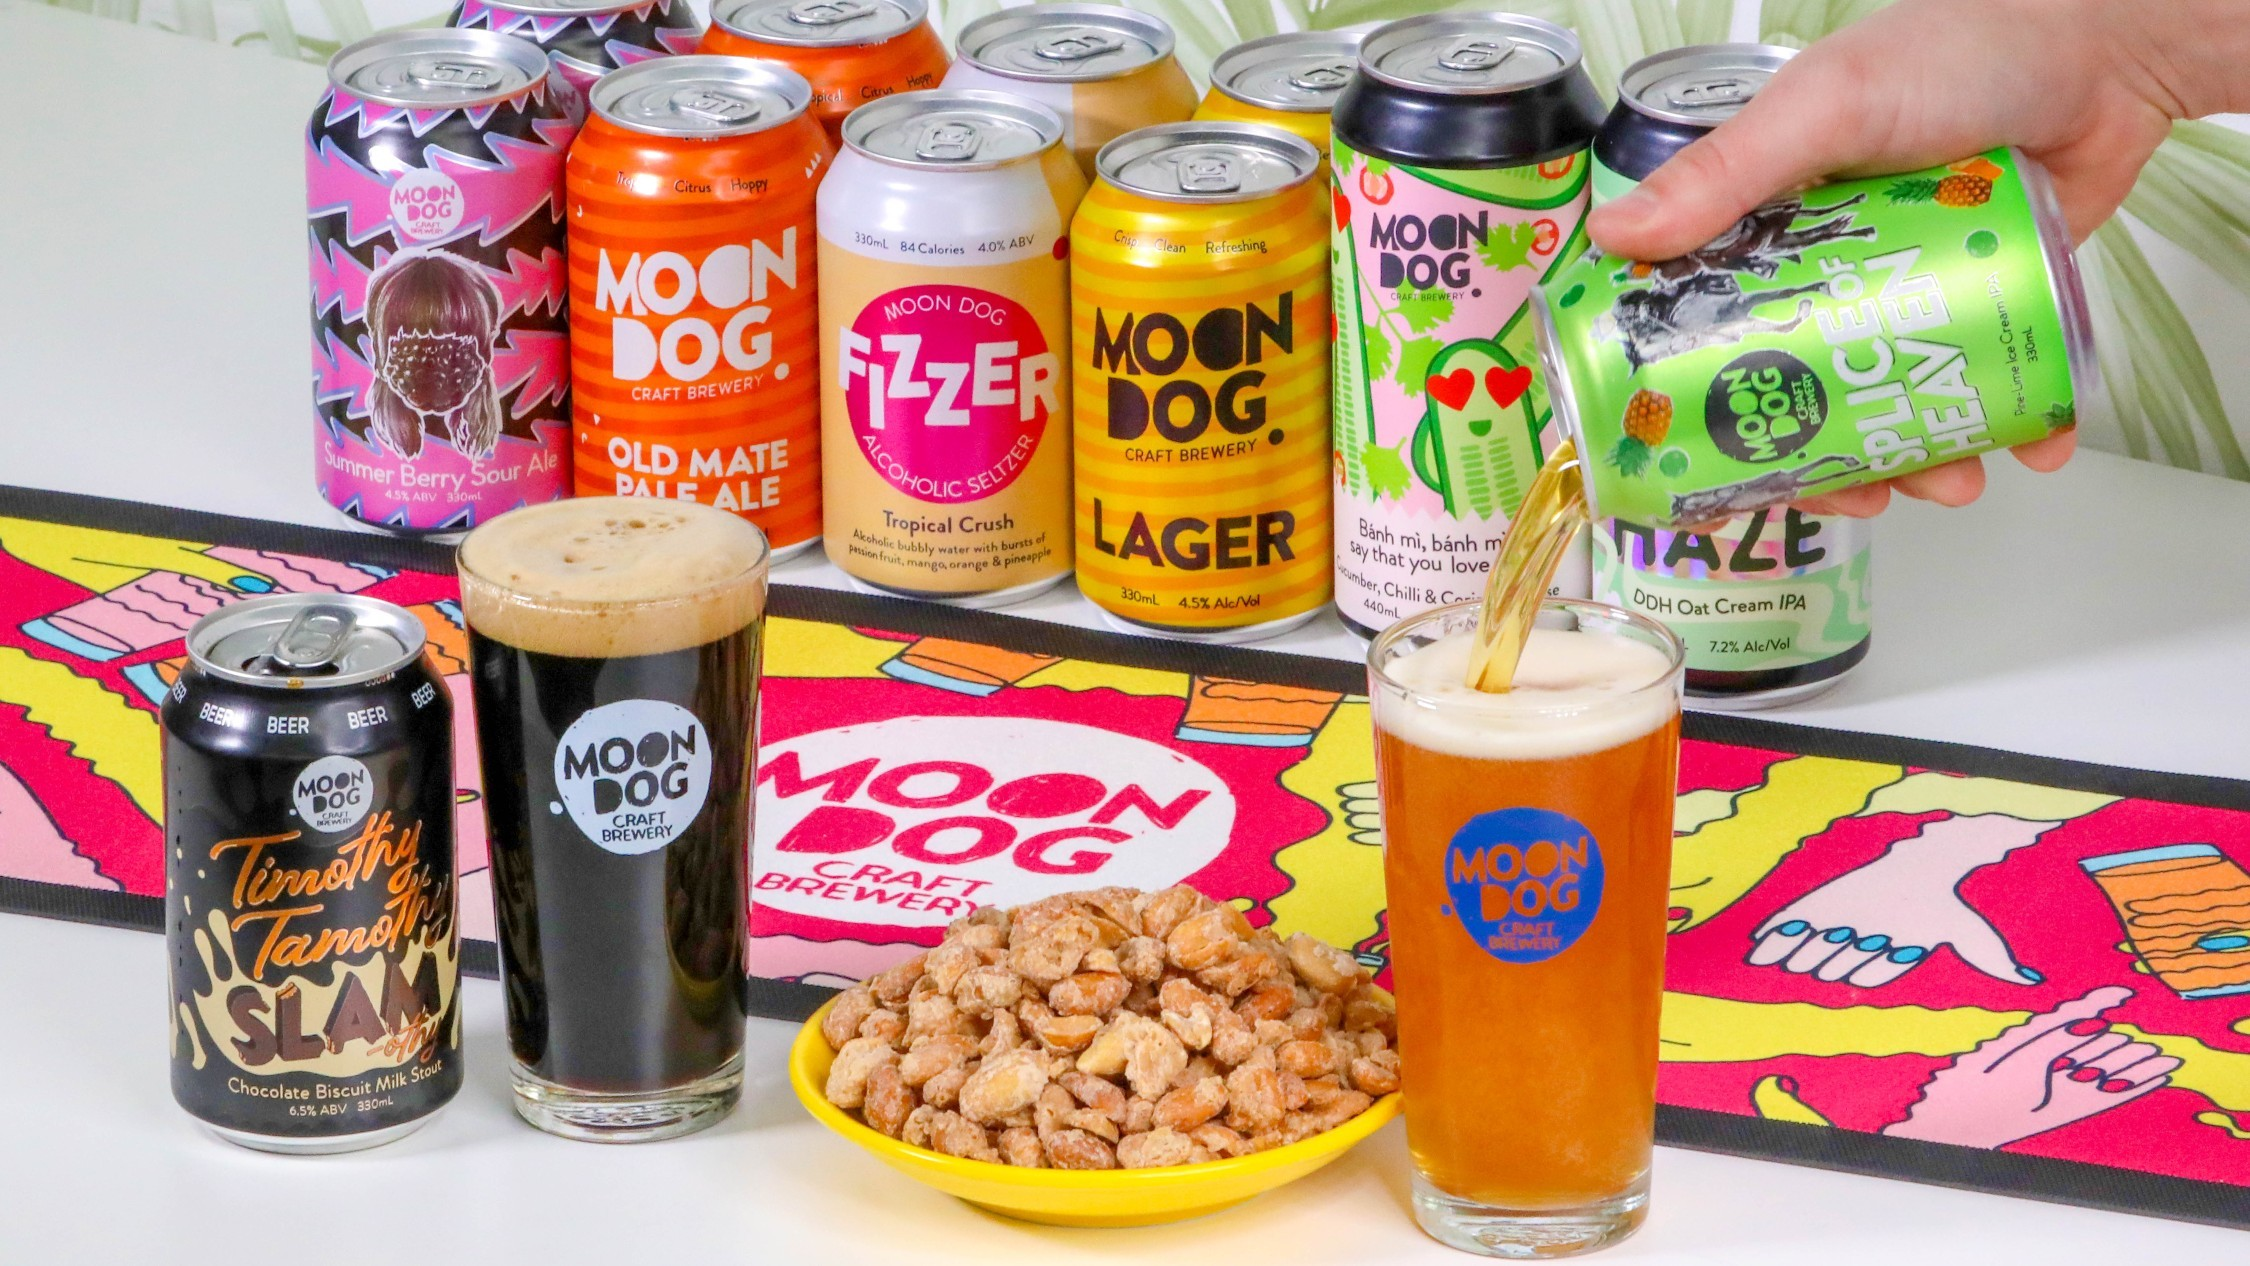 Moon Dog brewery is now selling a 'pub in a box'